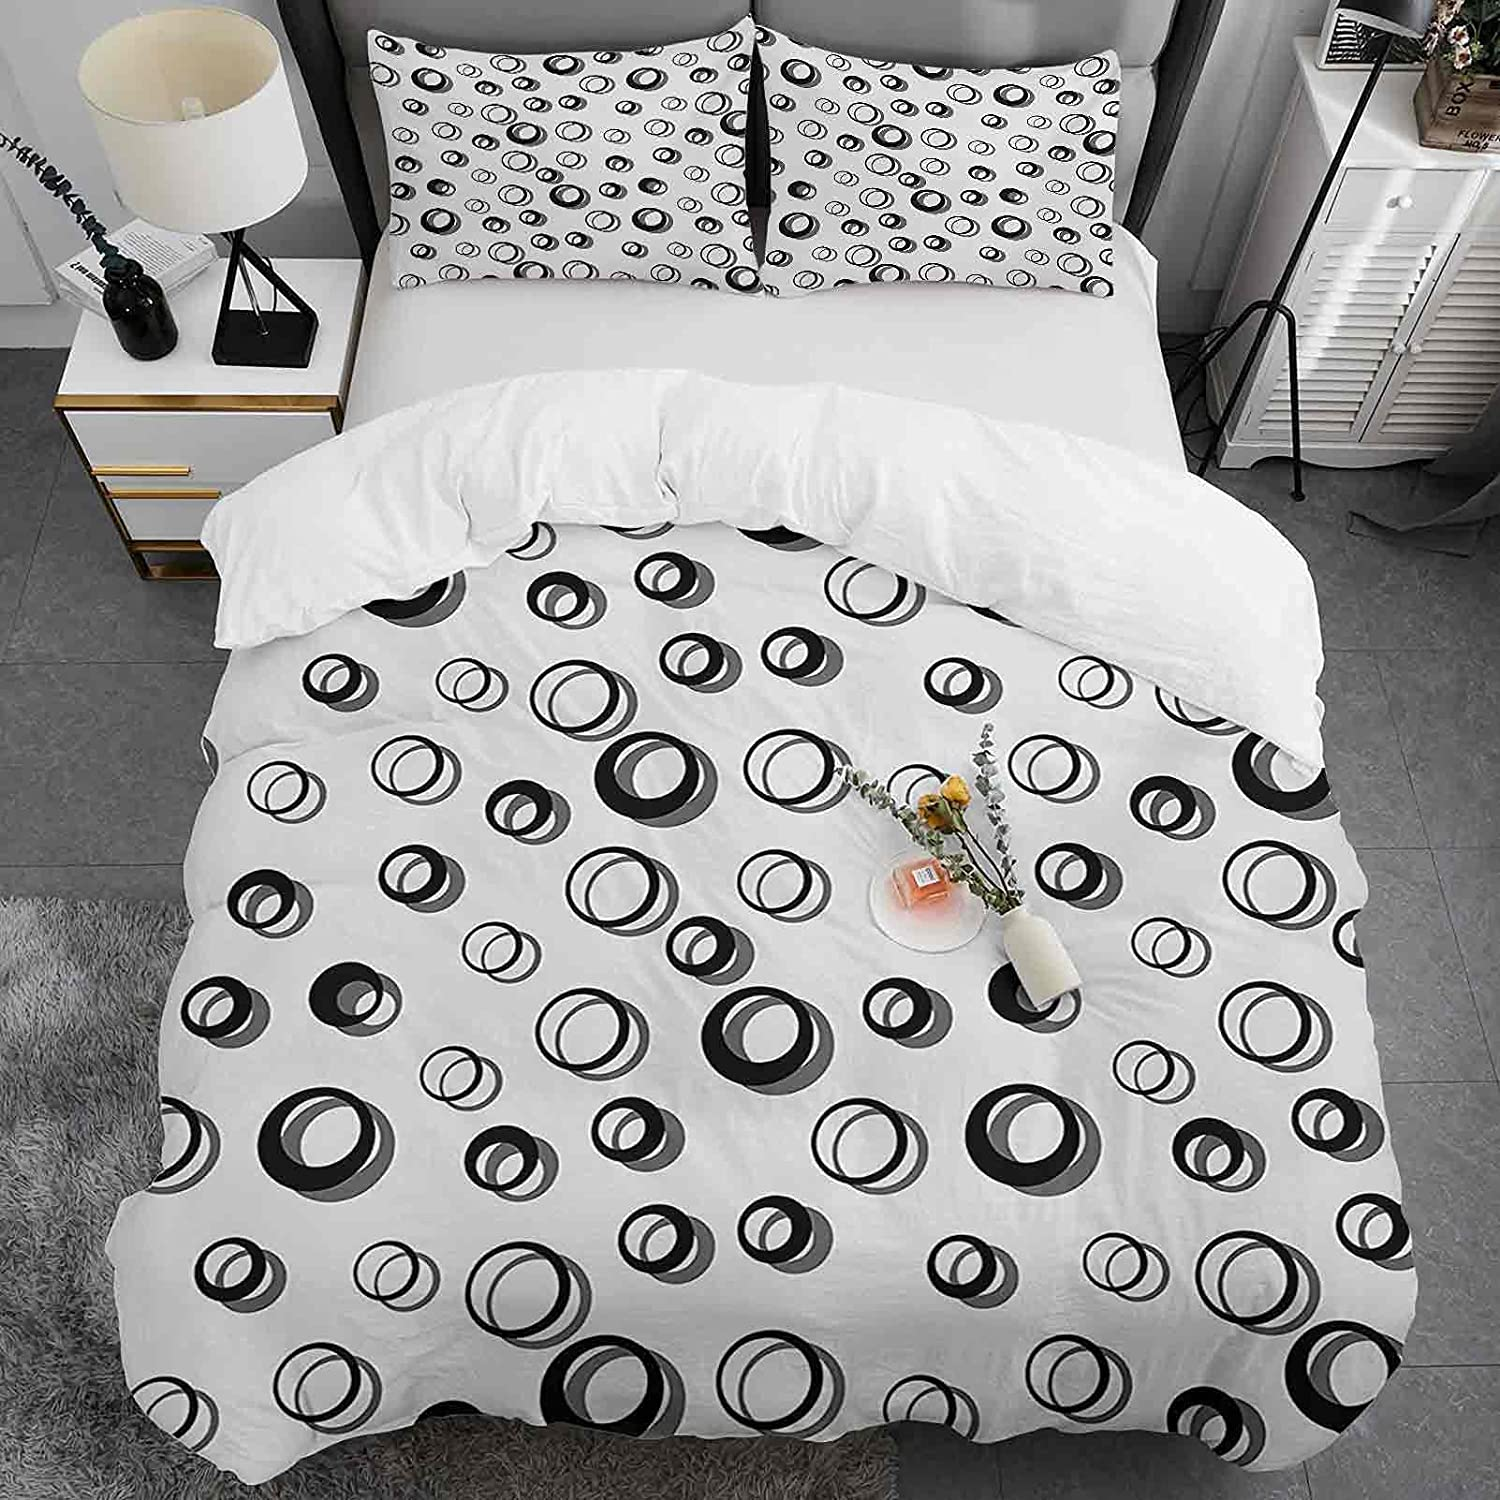 Kids free shipping Duvet Cover King Size Geometric Pattern and Br Max 46% OFF Soft Circle